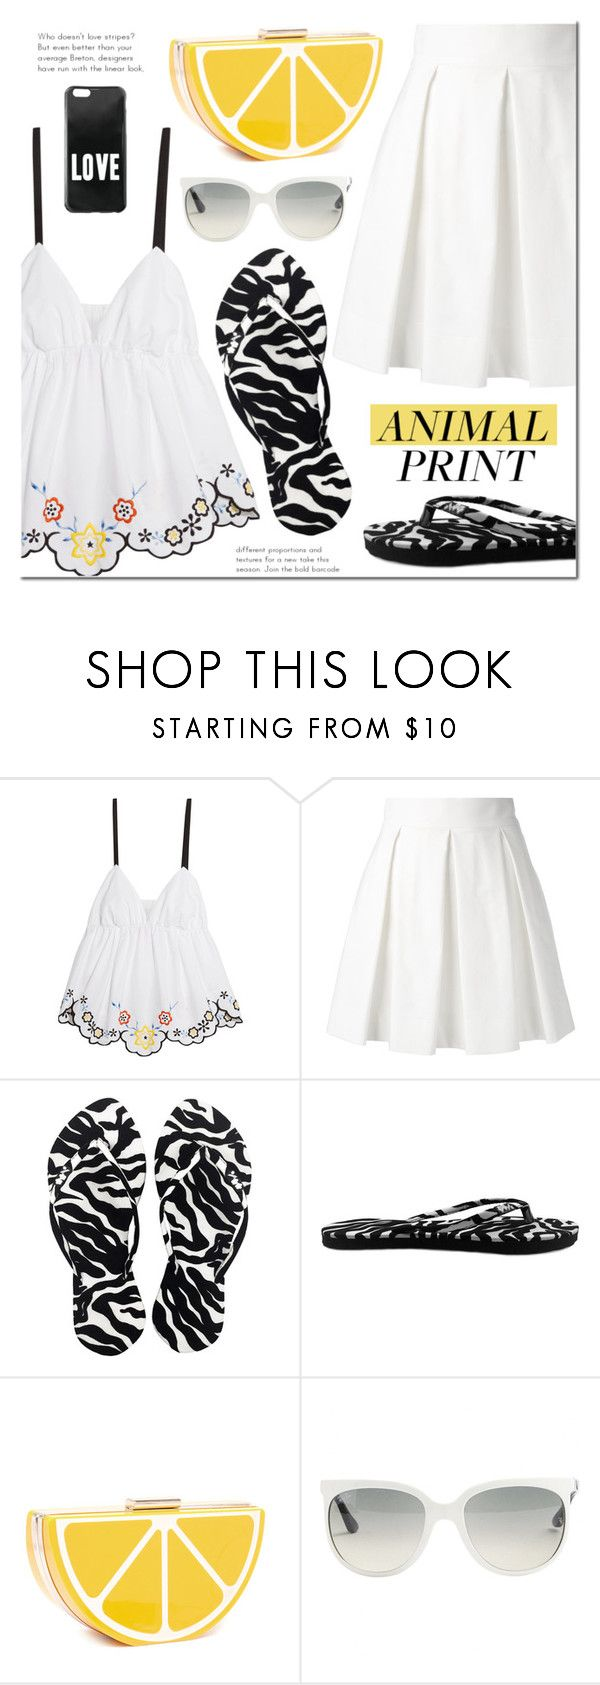 CHOSECHIC by mada-malureanu on Polyvore featuring See by Chloé, Boutique Moschino, Ray-Ban, Givenchy, FlipFlops and chosechic